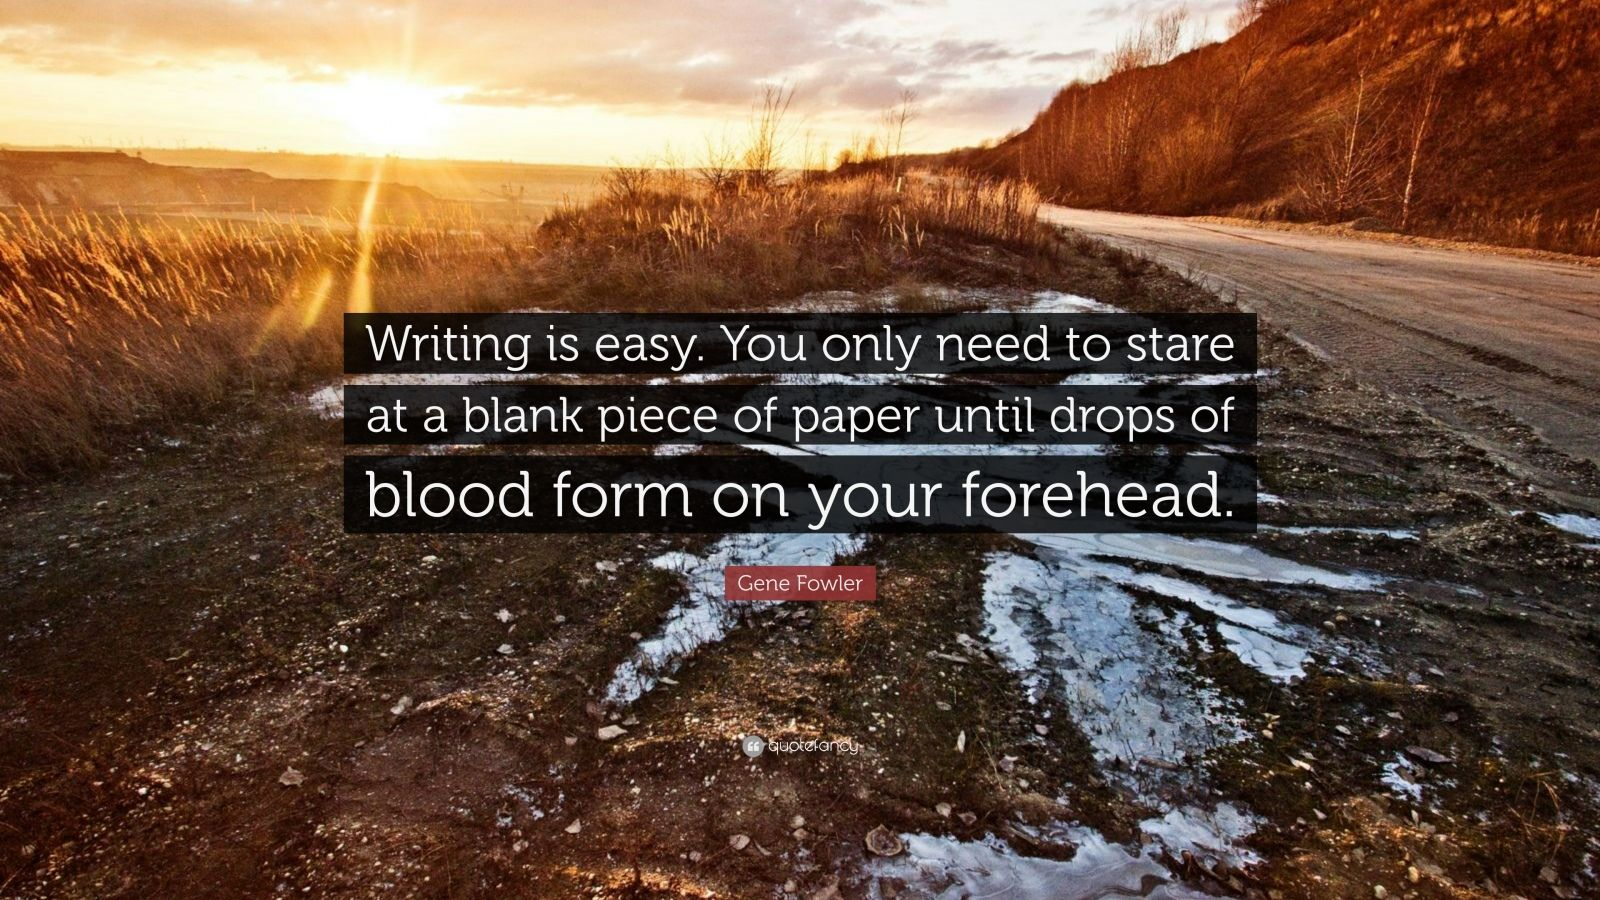 """Gene Fowler Quote: """"Writing is easy. You only need to stare at a blank piece of paper until drops of blood form on your forehead."""""""